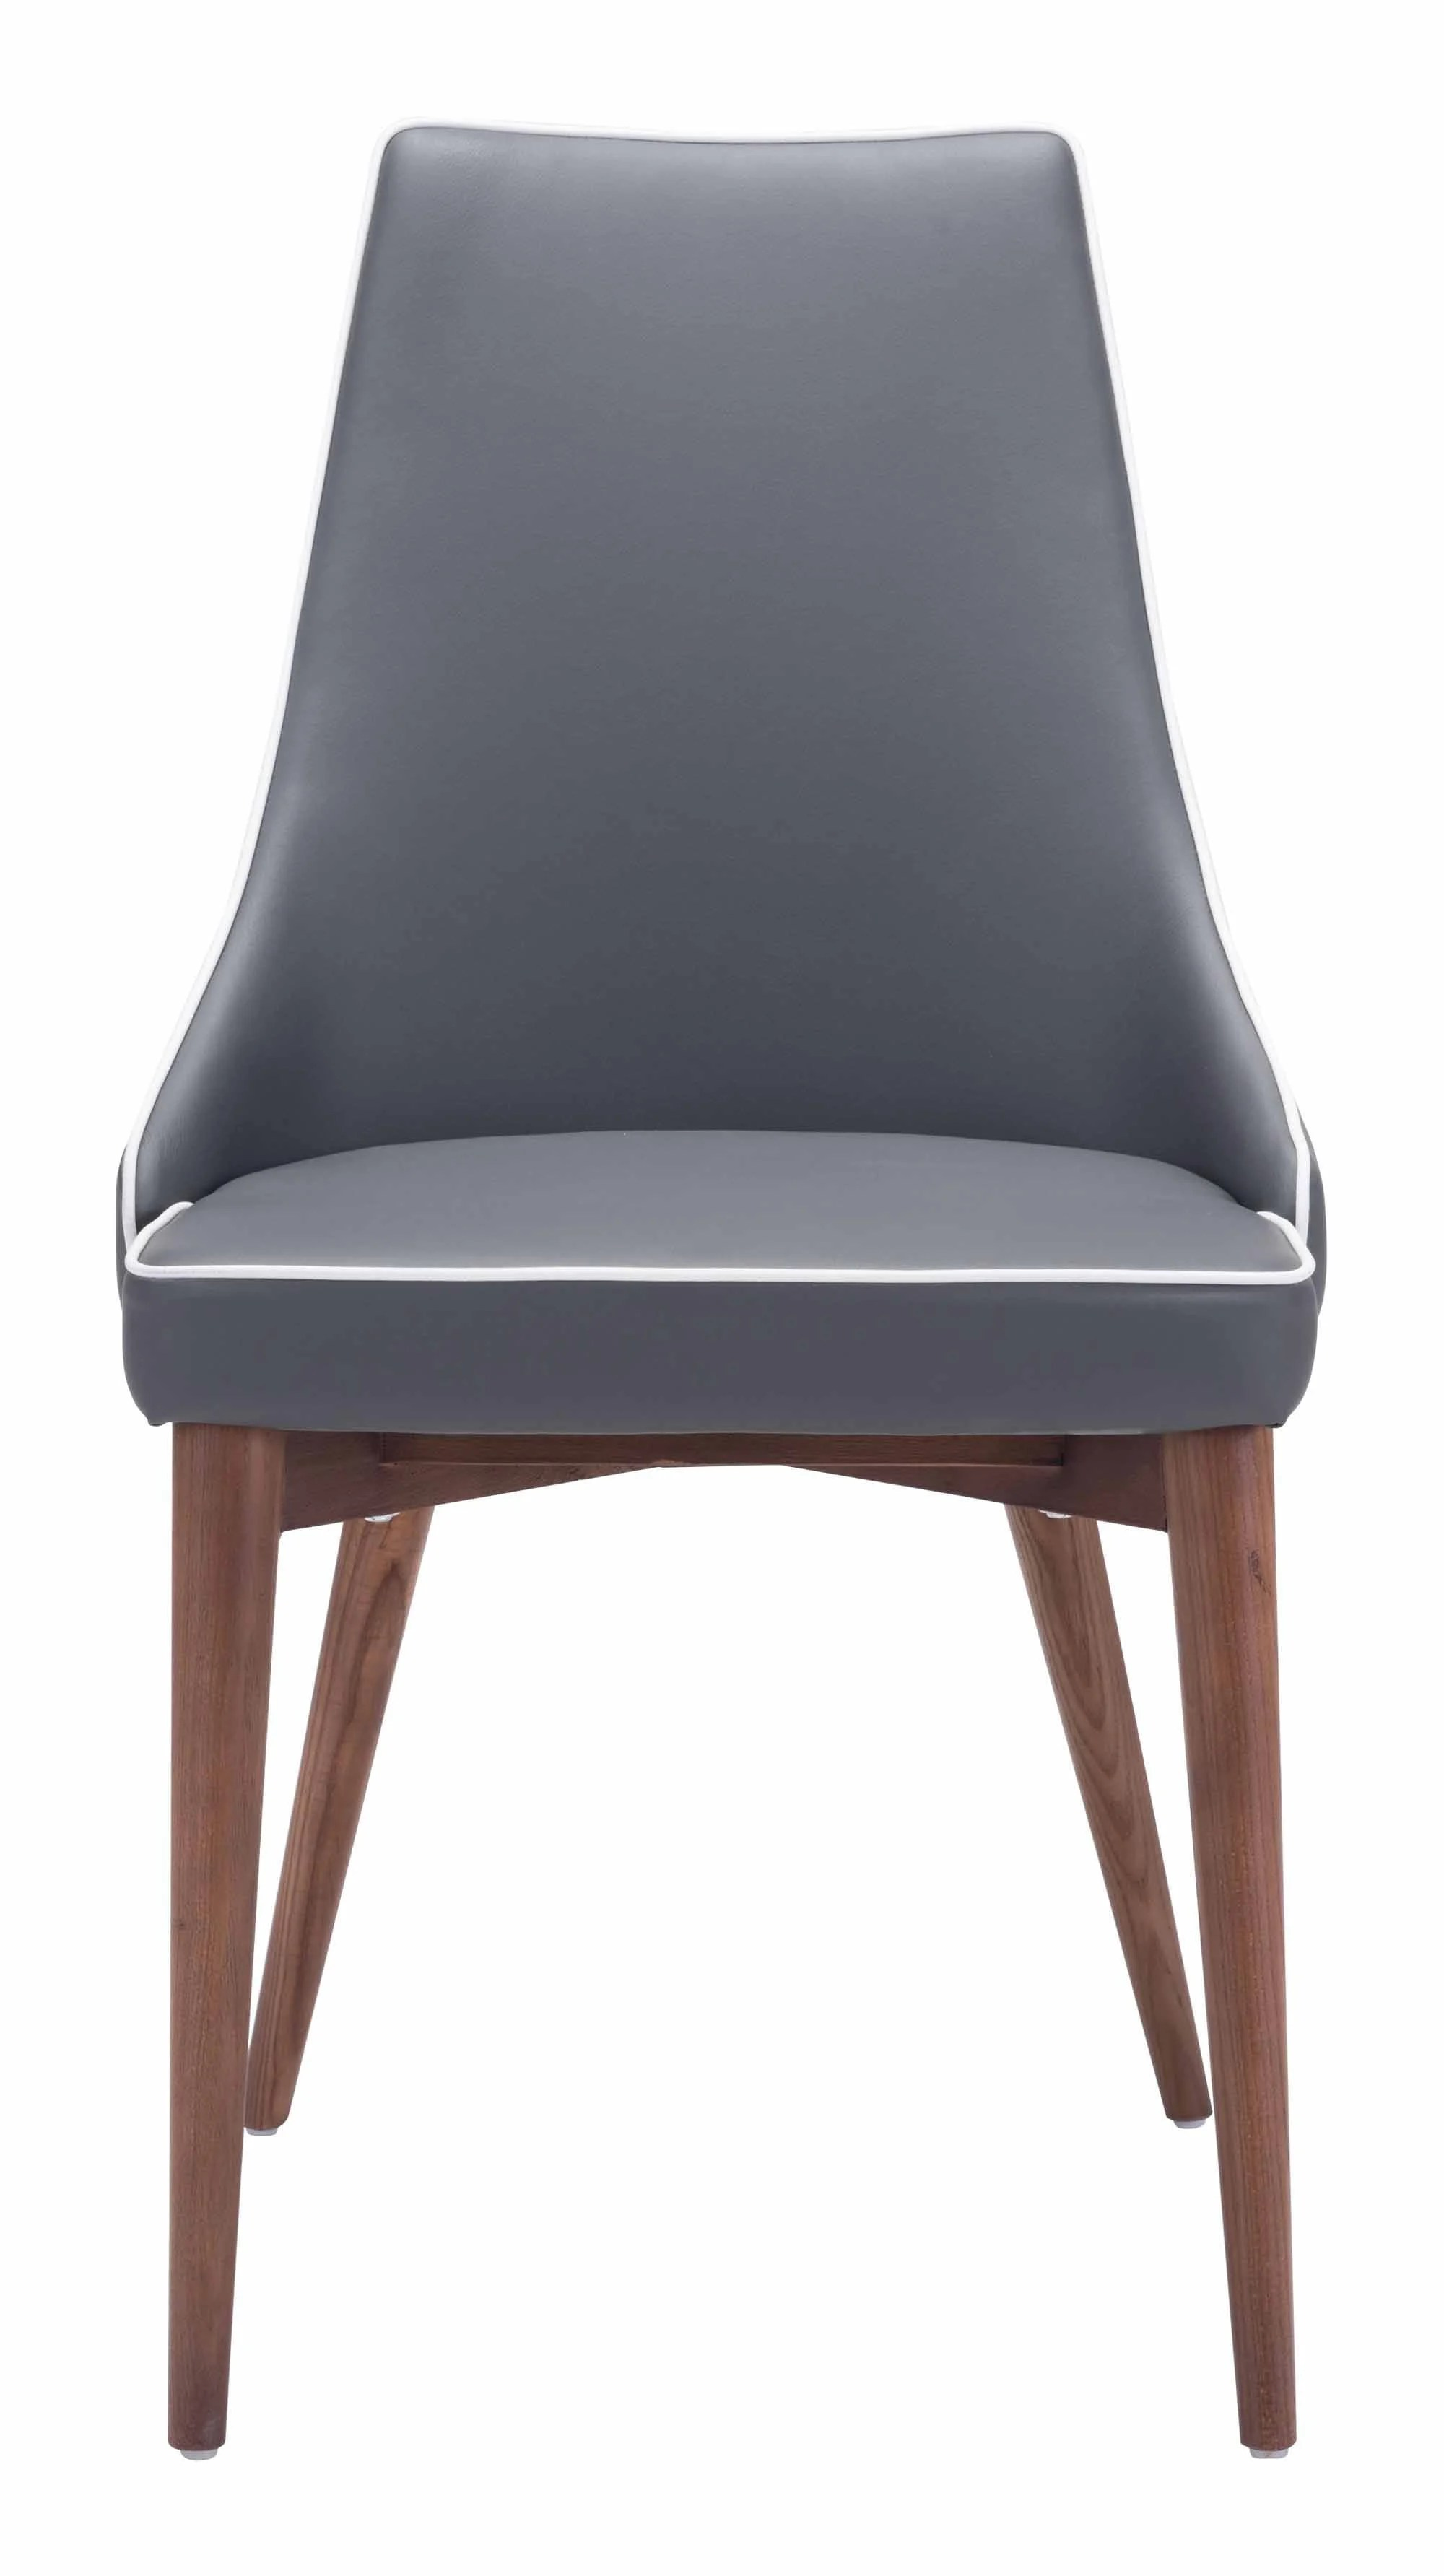 Dark Grey Dining Chairs Moor Dining Chair Dark Gray Set Of 2 By Zuo Modern